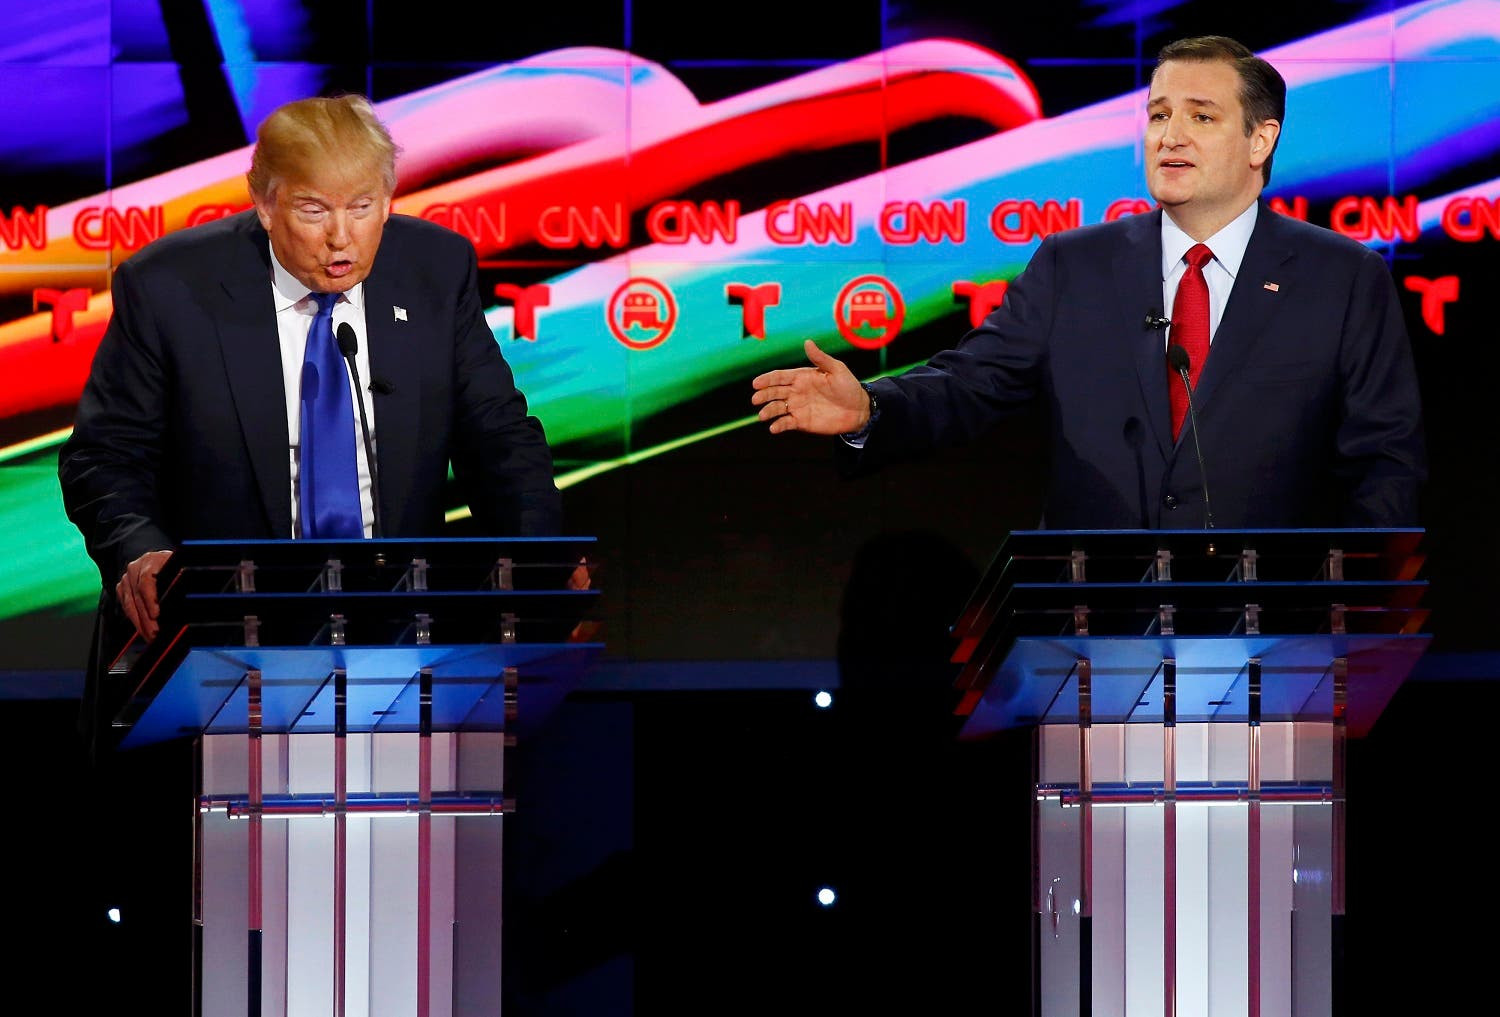 Republican U.S. presidential candidates Donald Trump (L) and Ted Cruz speak simultaneously as they discuss an issue during the debate sponsored by CNN for the 2016 Republican U.S. presidential candidates in Houston, Texas, February 25, 2016. REUTERS